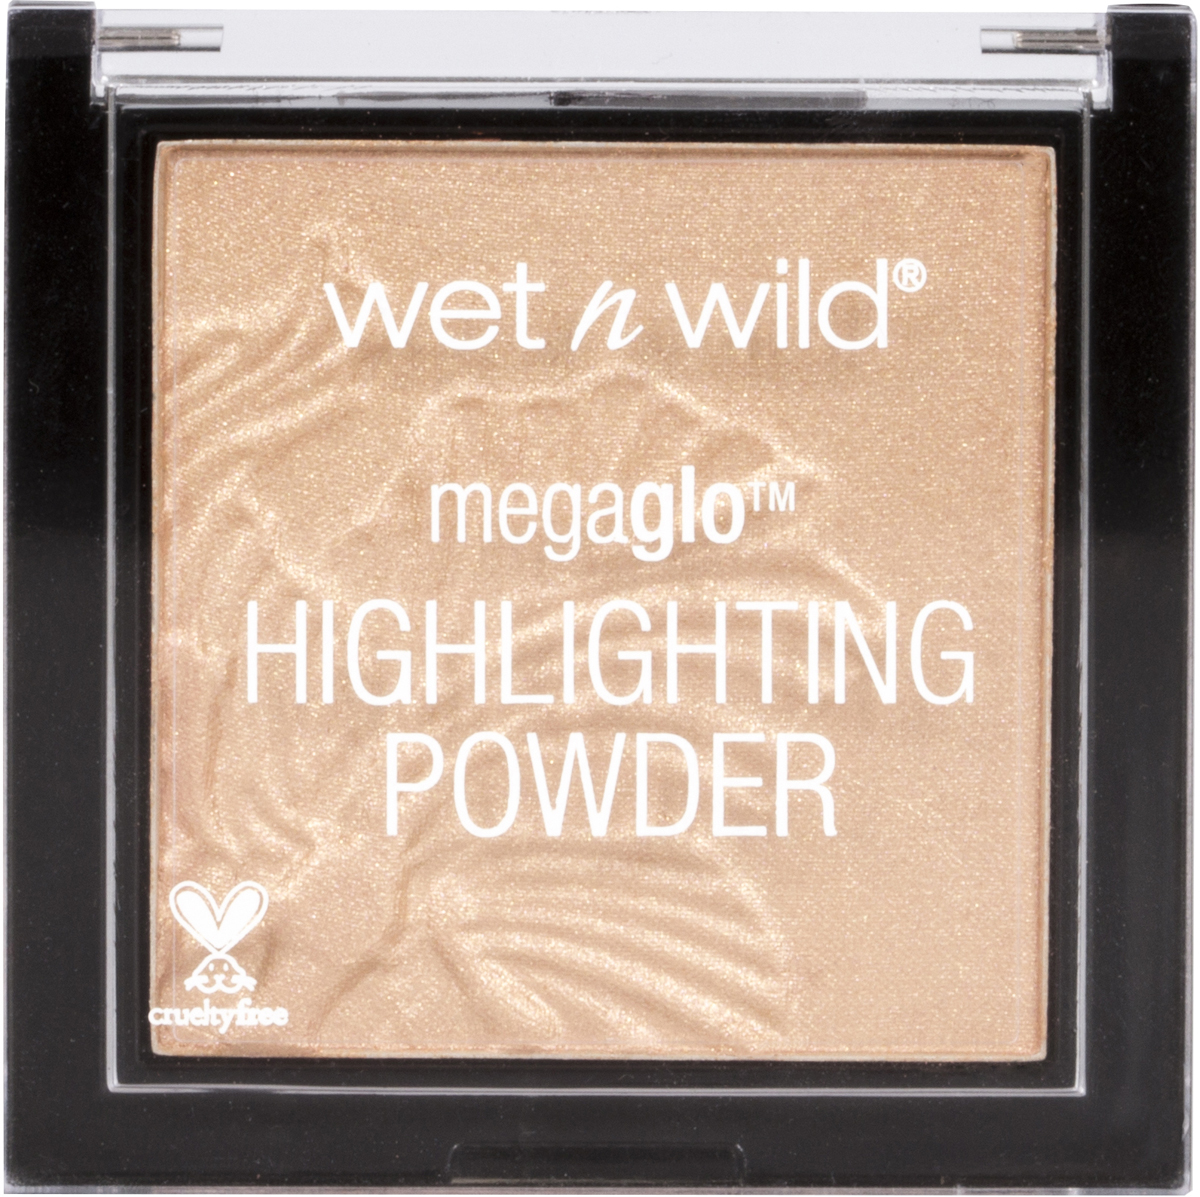 Wet n Wild Пудра-Хайлайтер MegaGlo Highlighting Powder, тон Precious Petals, 9 г wet n wild корректор жидкий photo focus concealer тон medium tawny 5 2 г